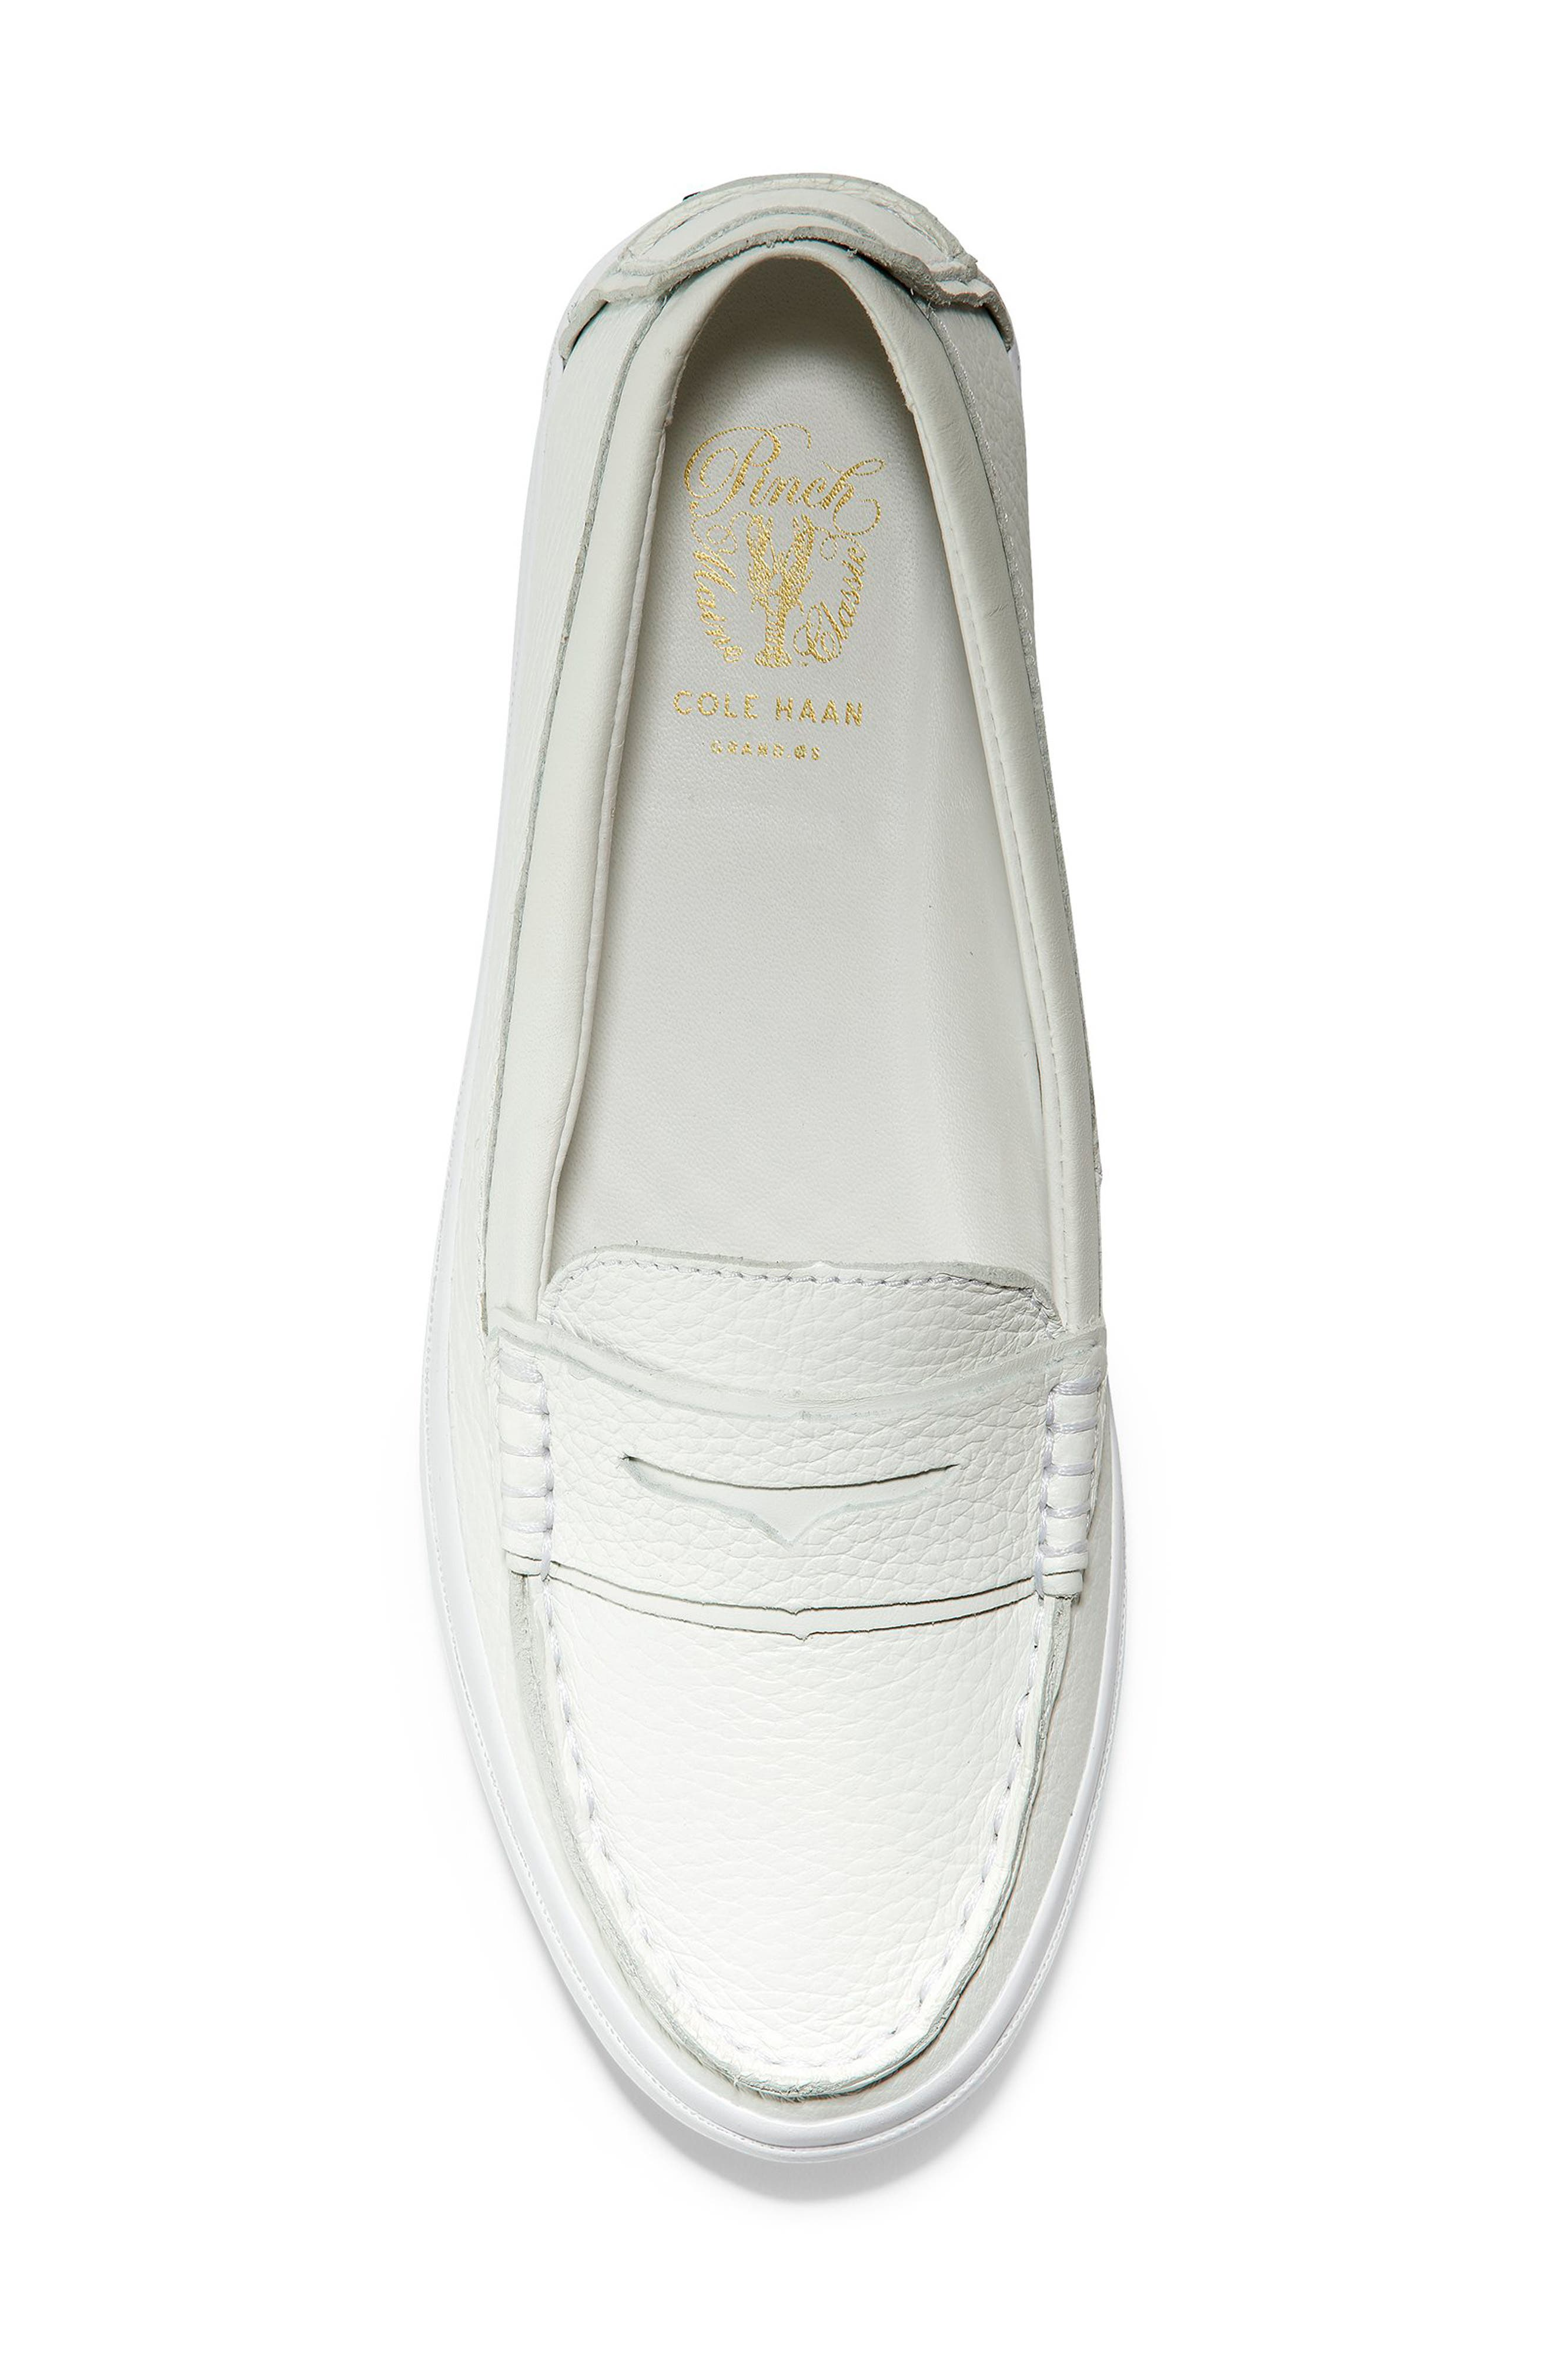 COLE HAAN, Pinch LX Loafer, Alternate thumbnail 5, color, OPTIC WHITE LEATHER